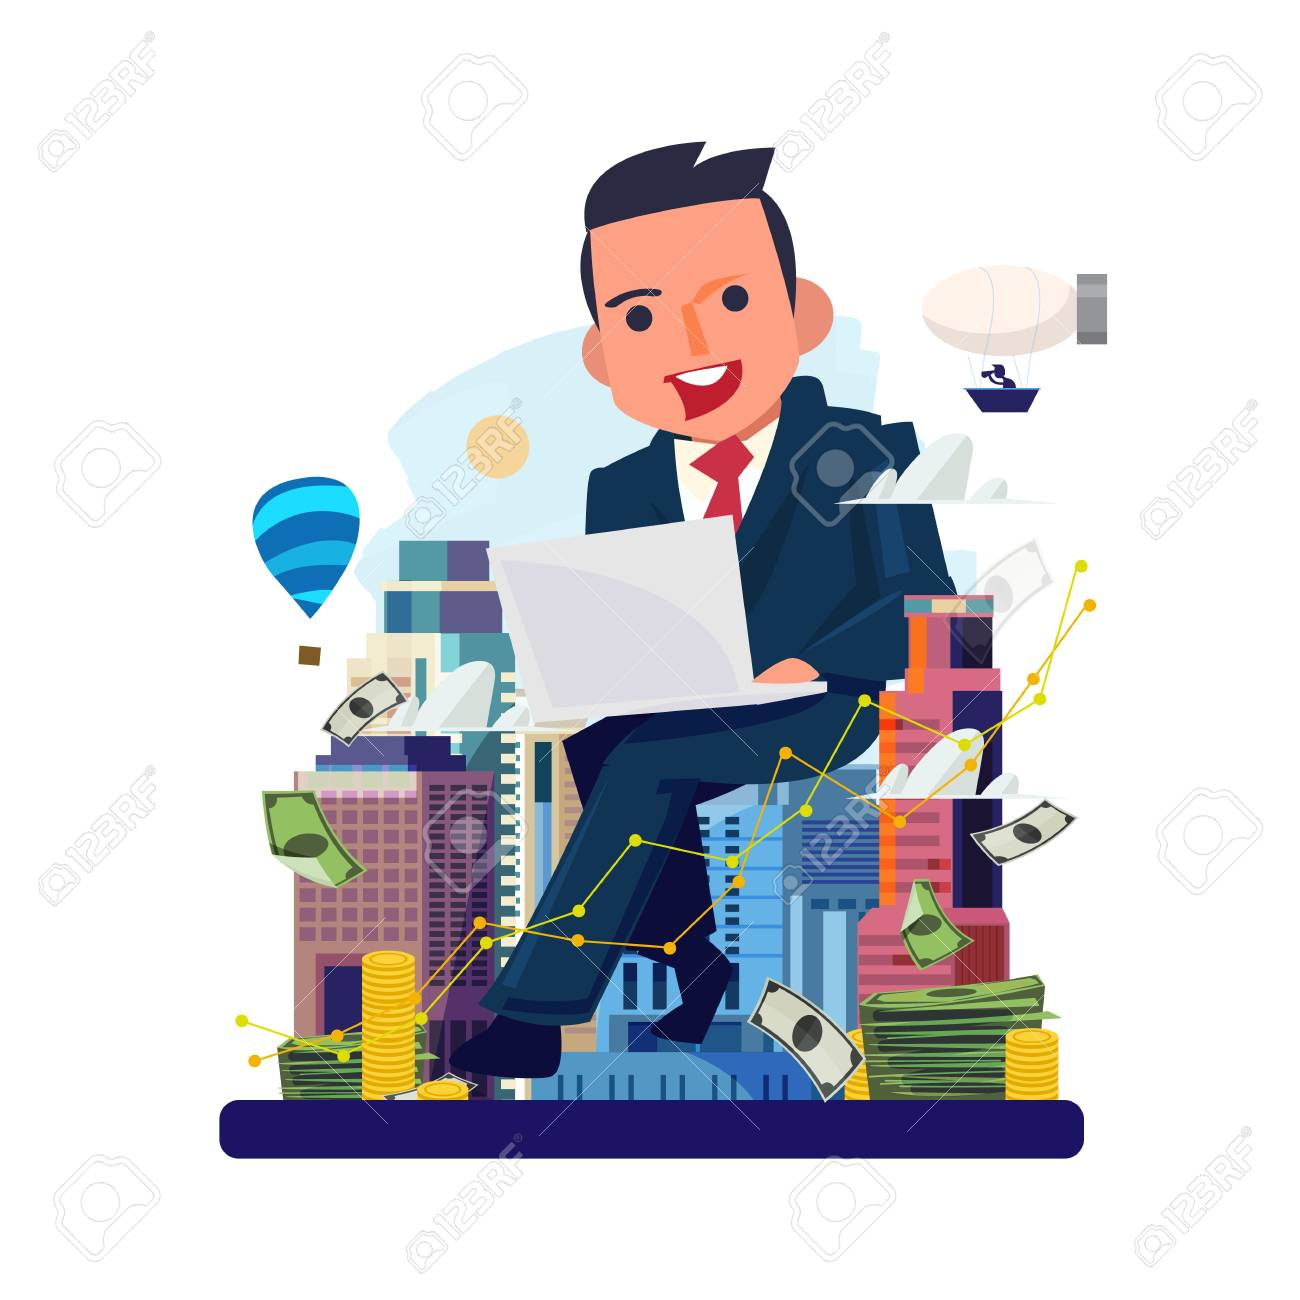 businessman working by laptop with city in background. Real estate agent. Real estate developers. make money by real estate concept - vector illustration - 111904306